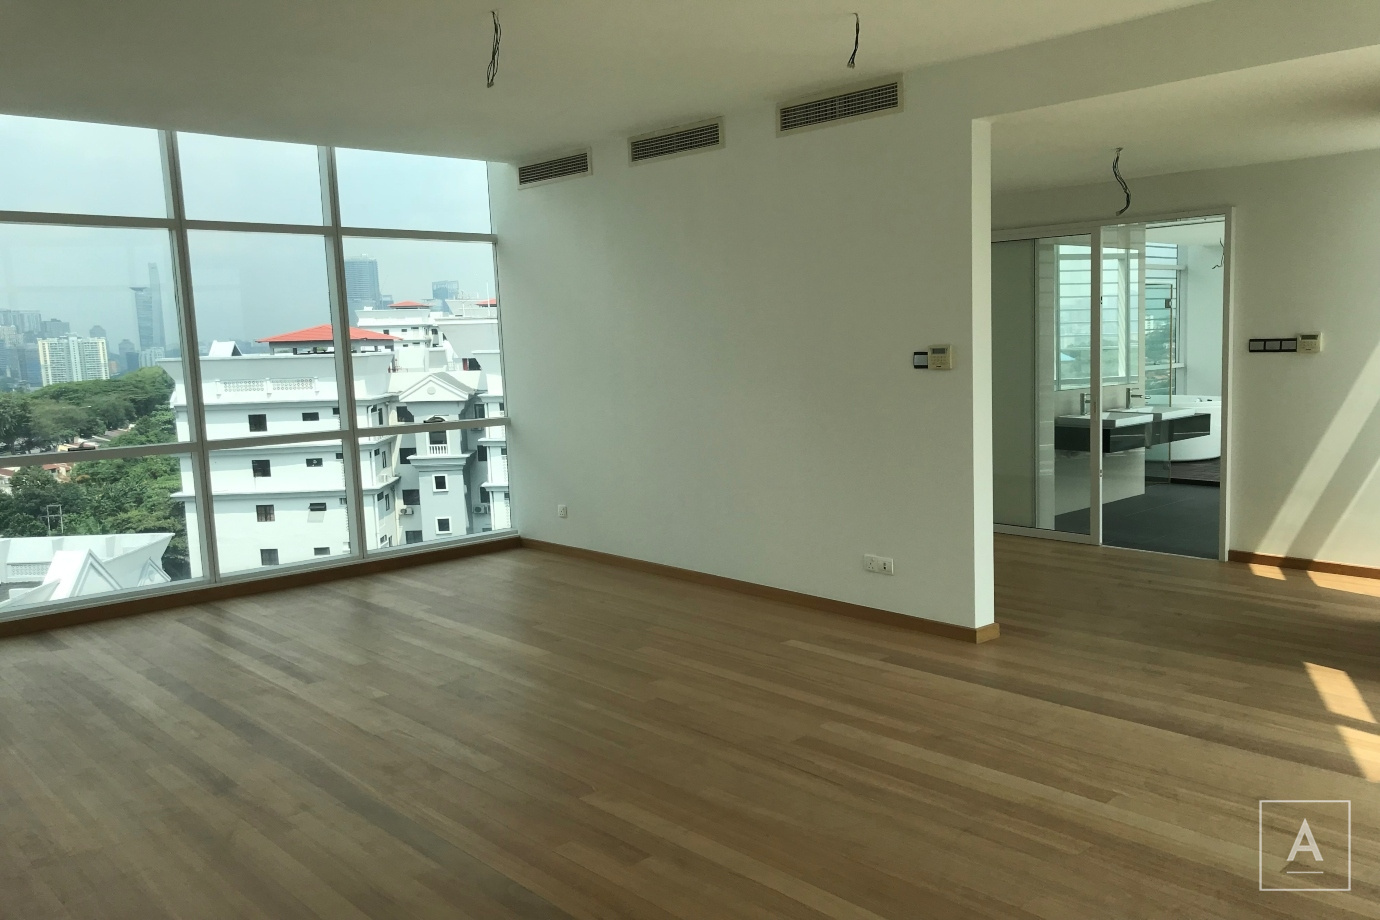 Desa Eight Condominium, Taman Desa,Kuala Lumpur, 4 Bedrooms Bedrooms, ,6 BathroomsBathrooms,Condominium / Serviced Residence,For Sale,Desa Eight,Jalan Desa Utama,1874